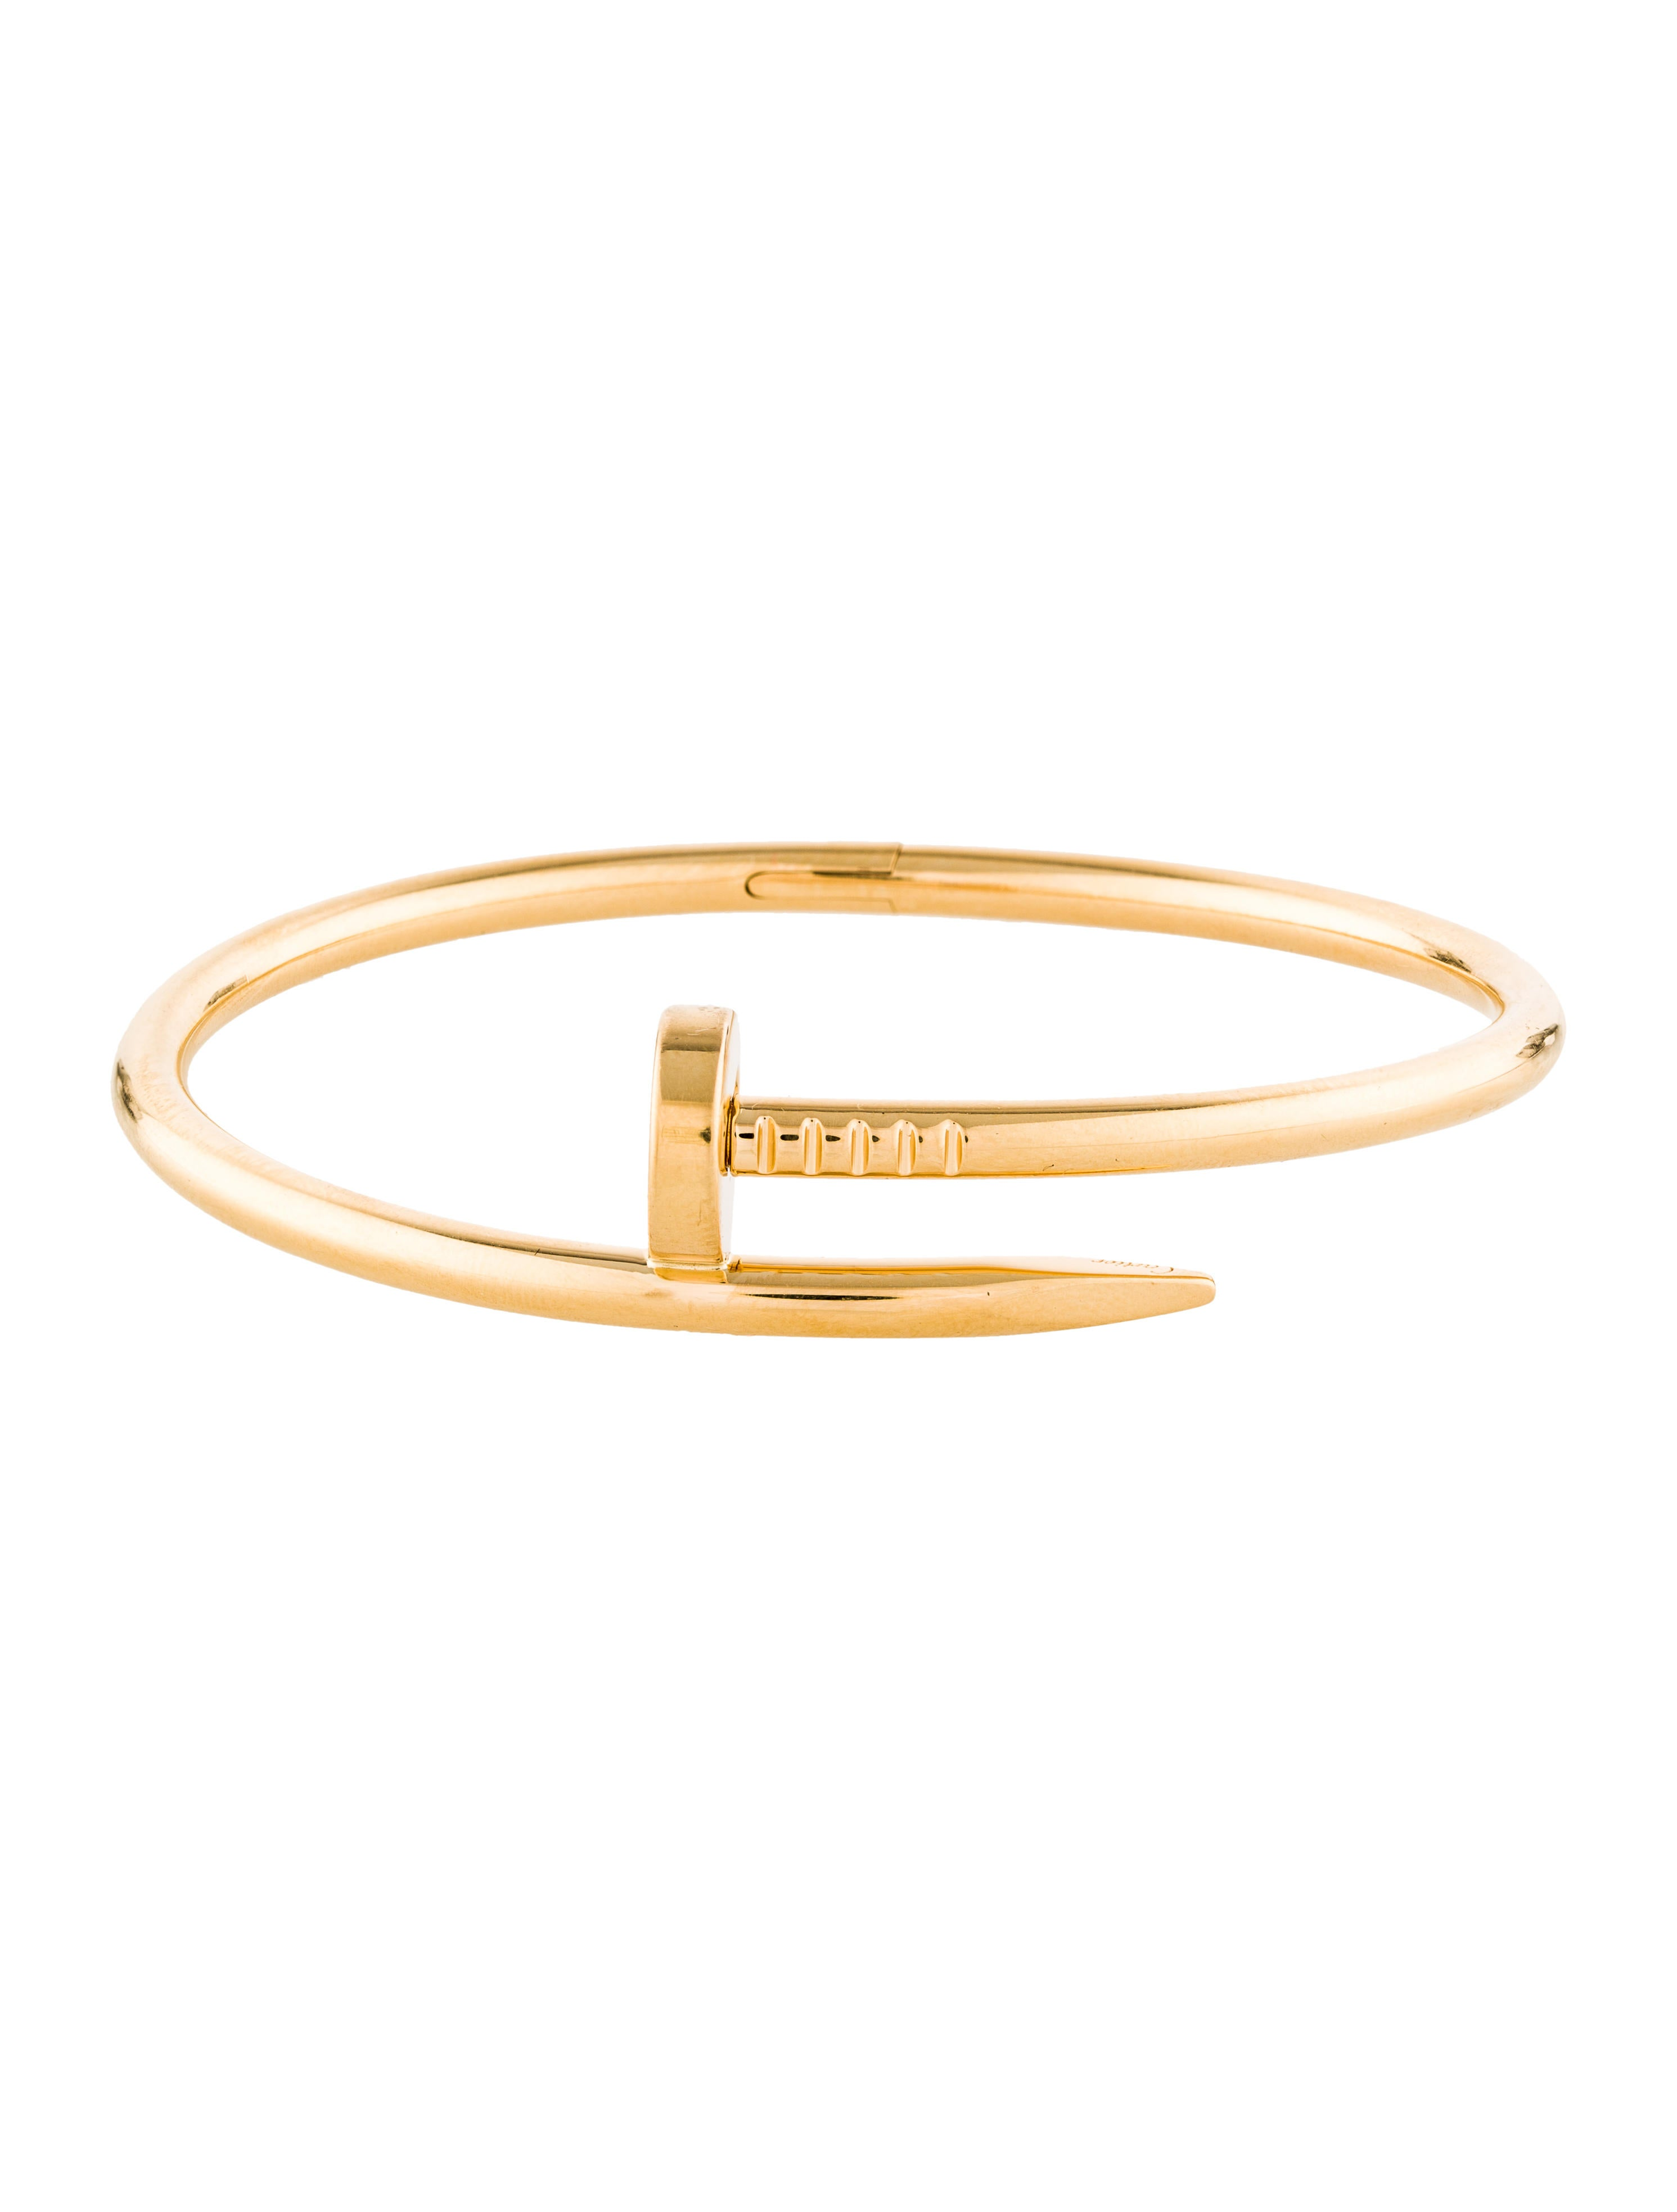 clou cartier gold juste fine un just products diamond bracelet cm